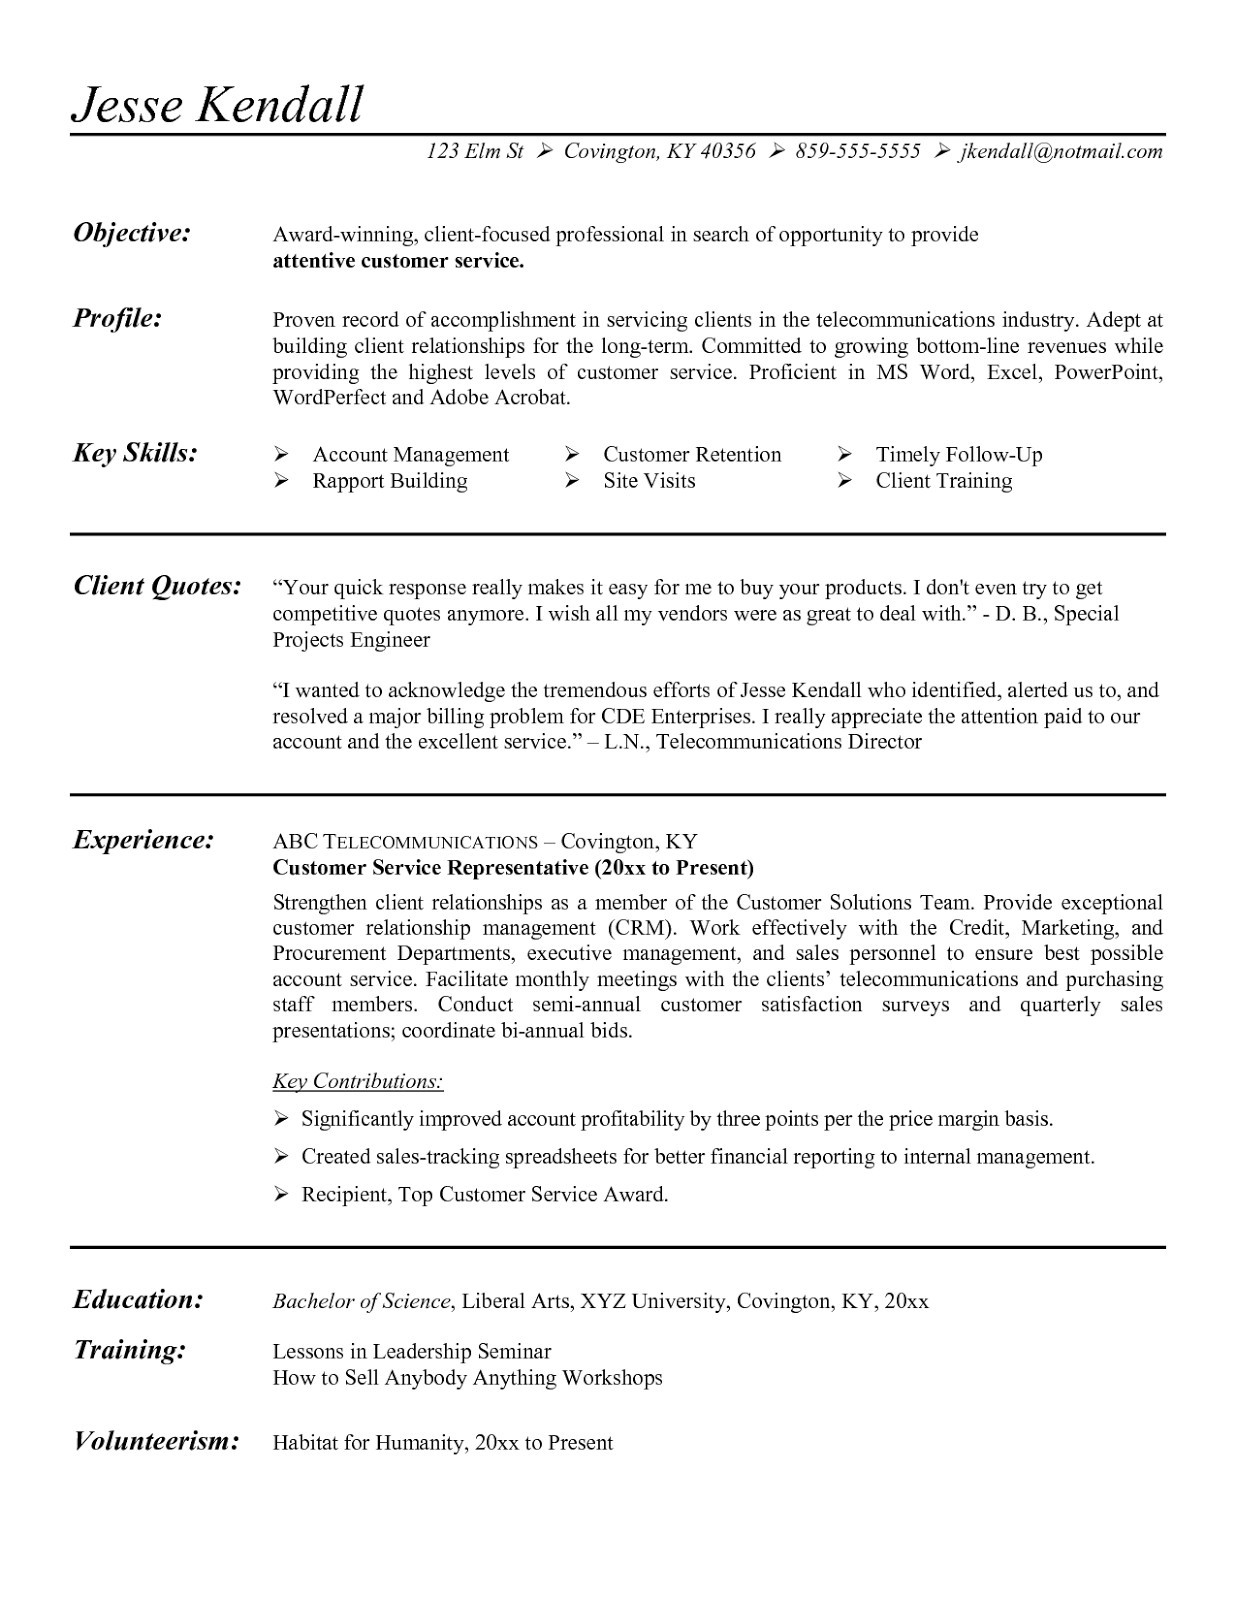 Resume Summary Section - 25 Fresh Resume Summary Section